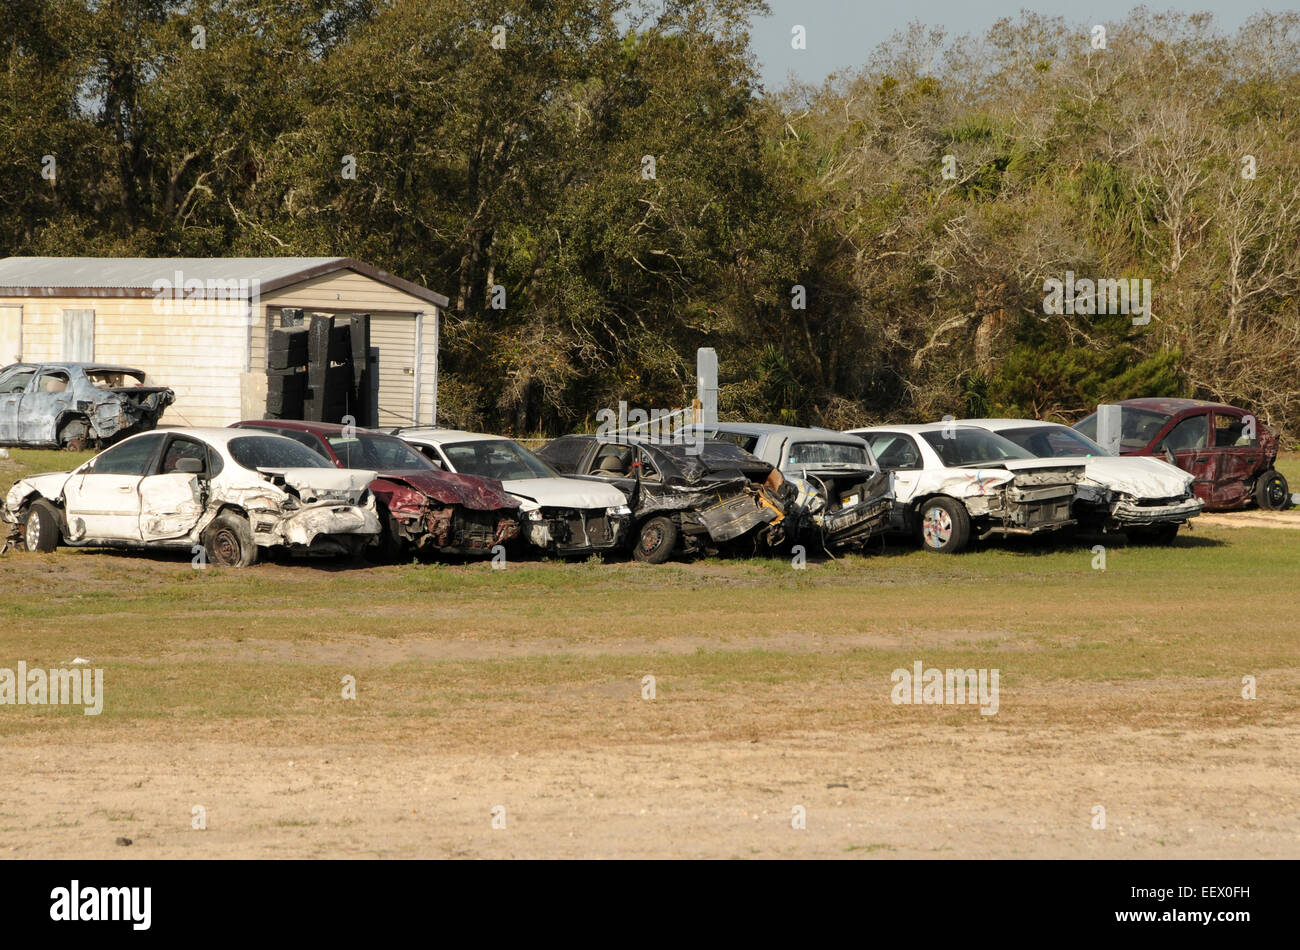 Old abandoned cars in junk yard - Stock Image